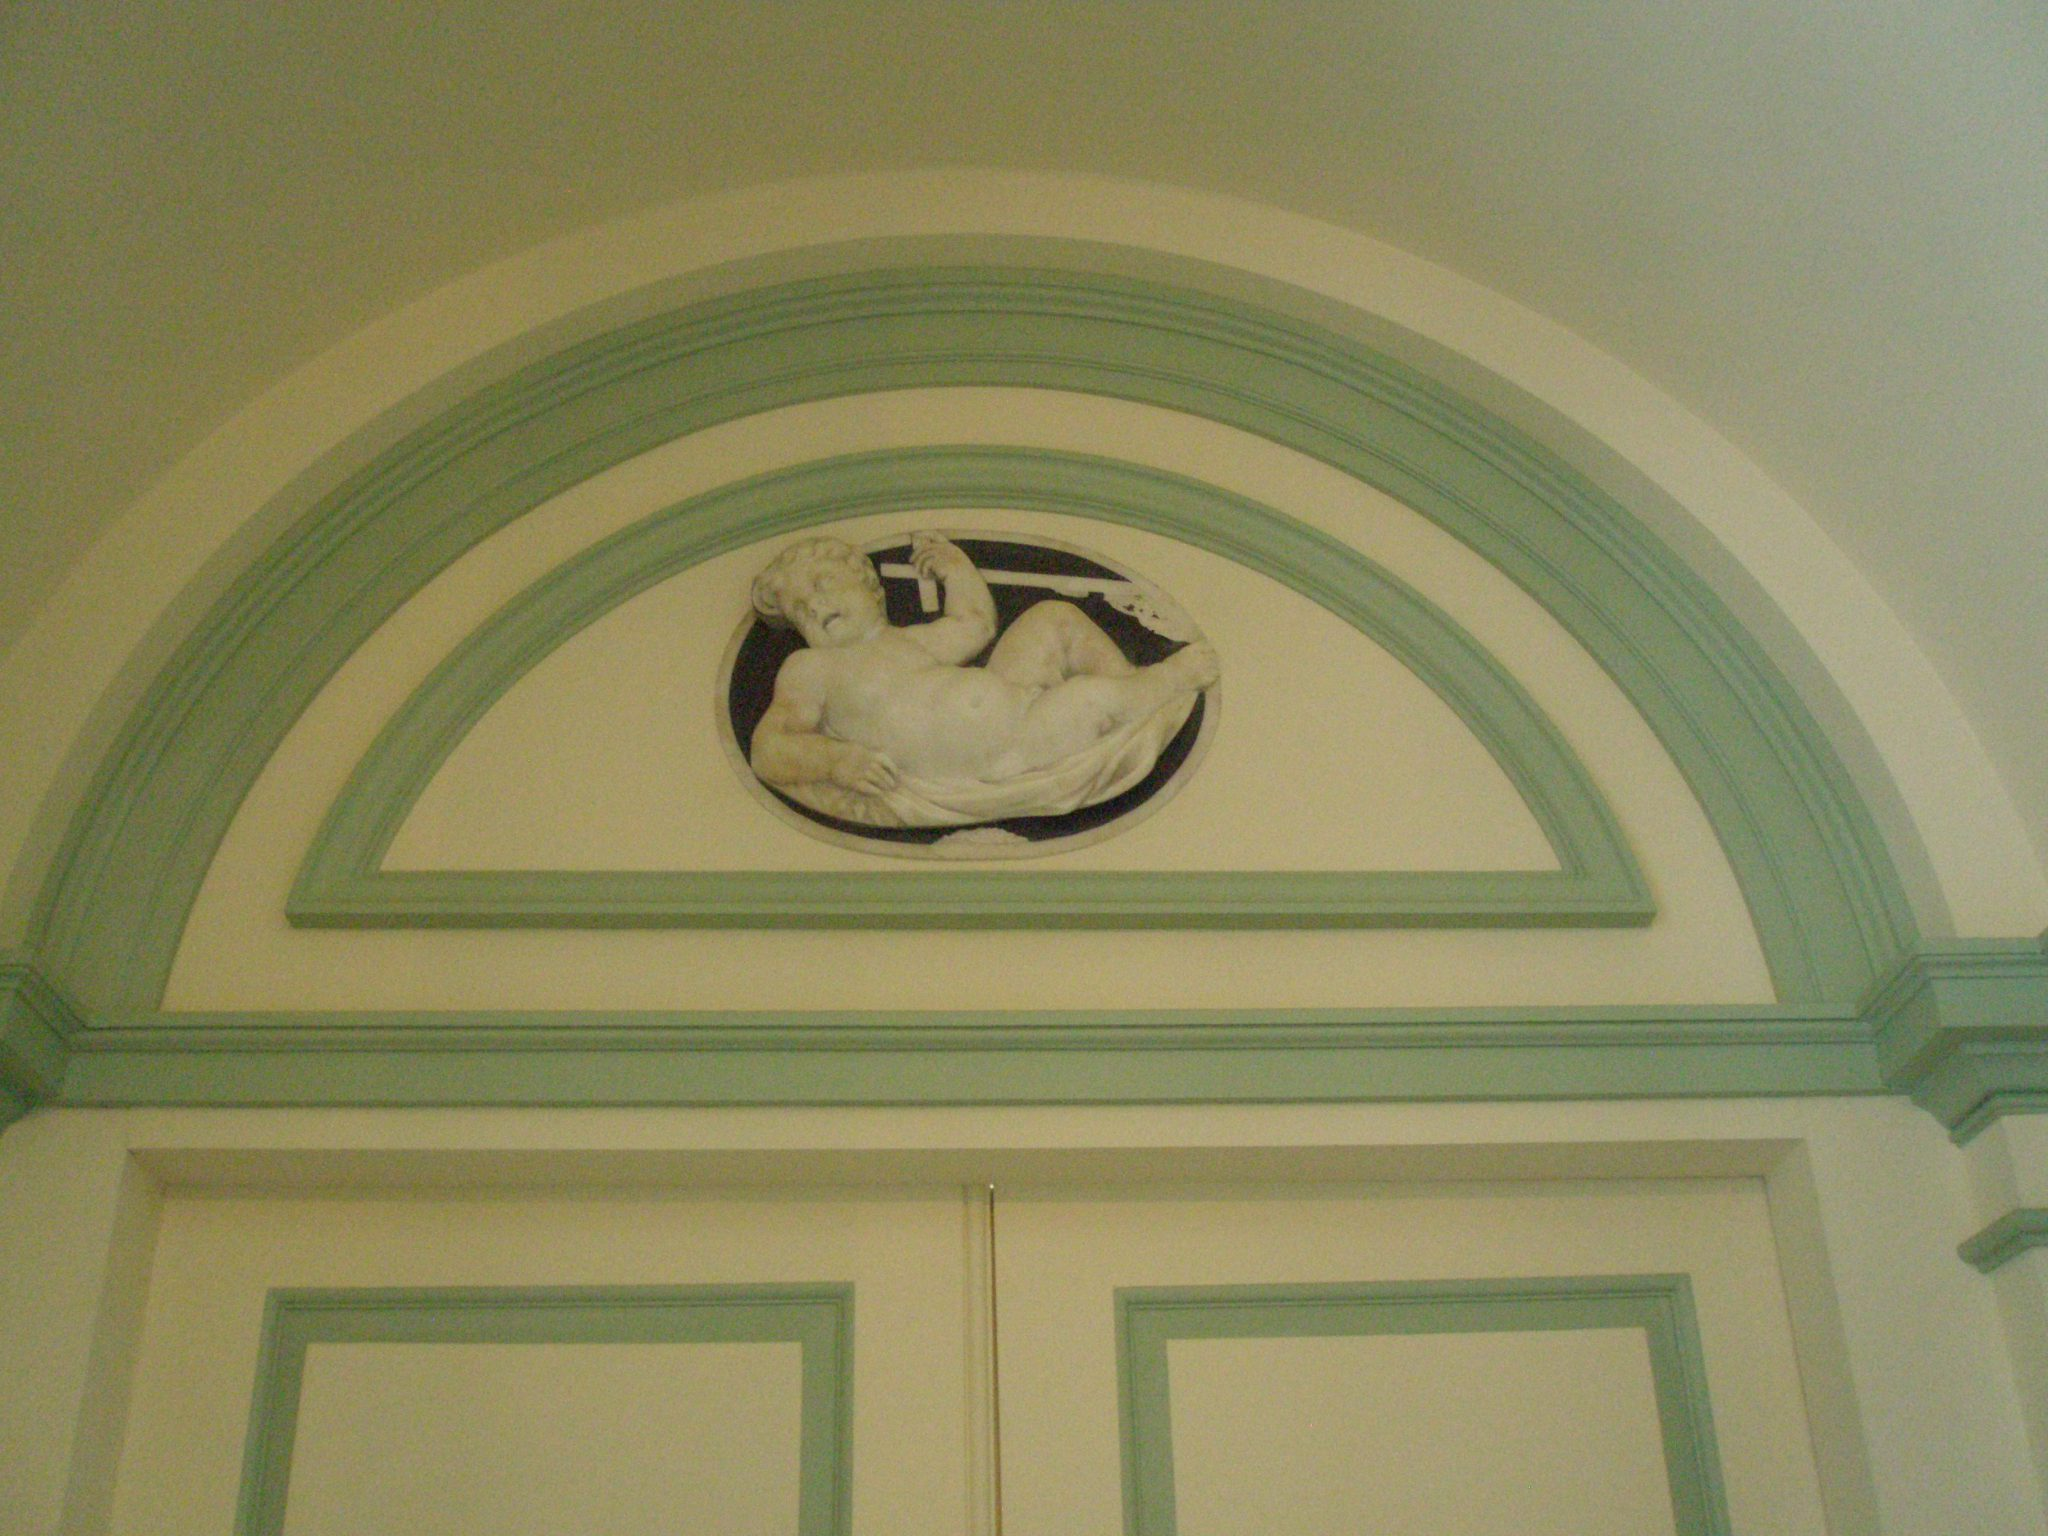 Decoration over the door in the Gallery that leads to the study of Wharton's ineffectual husband, Teddy. Teddy's story is long and depressing...suffice it to say that Edith eventually had to leave him, along with her beloved home. This bas relief depicts John the Baptist as in infant.